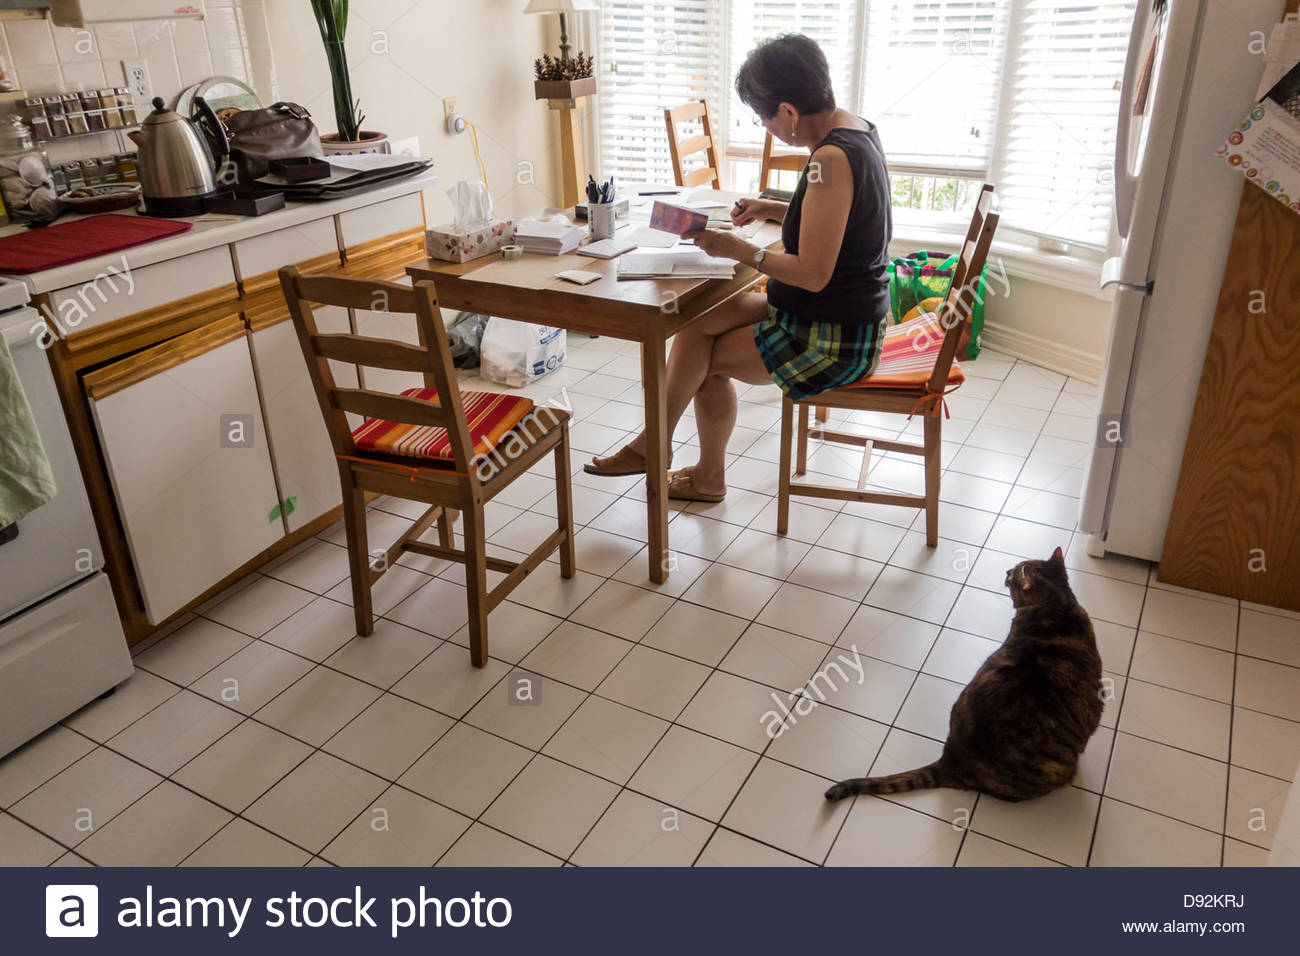 Writing Thank You Cards At Kitchen Table In Toronto Ontario Canada Stock Photo Alamy